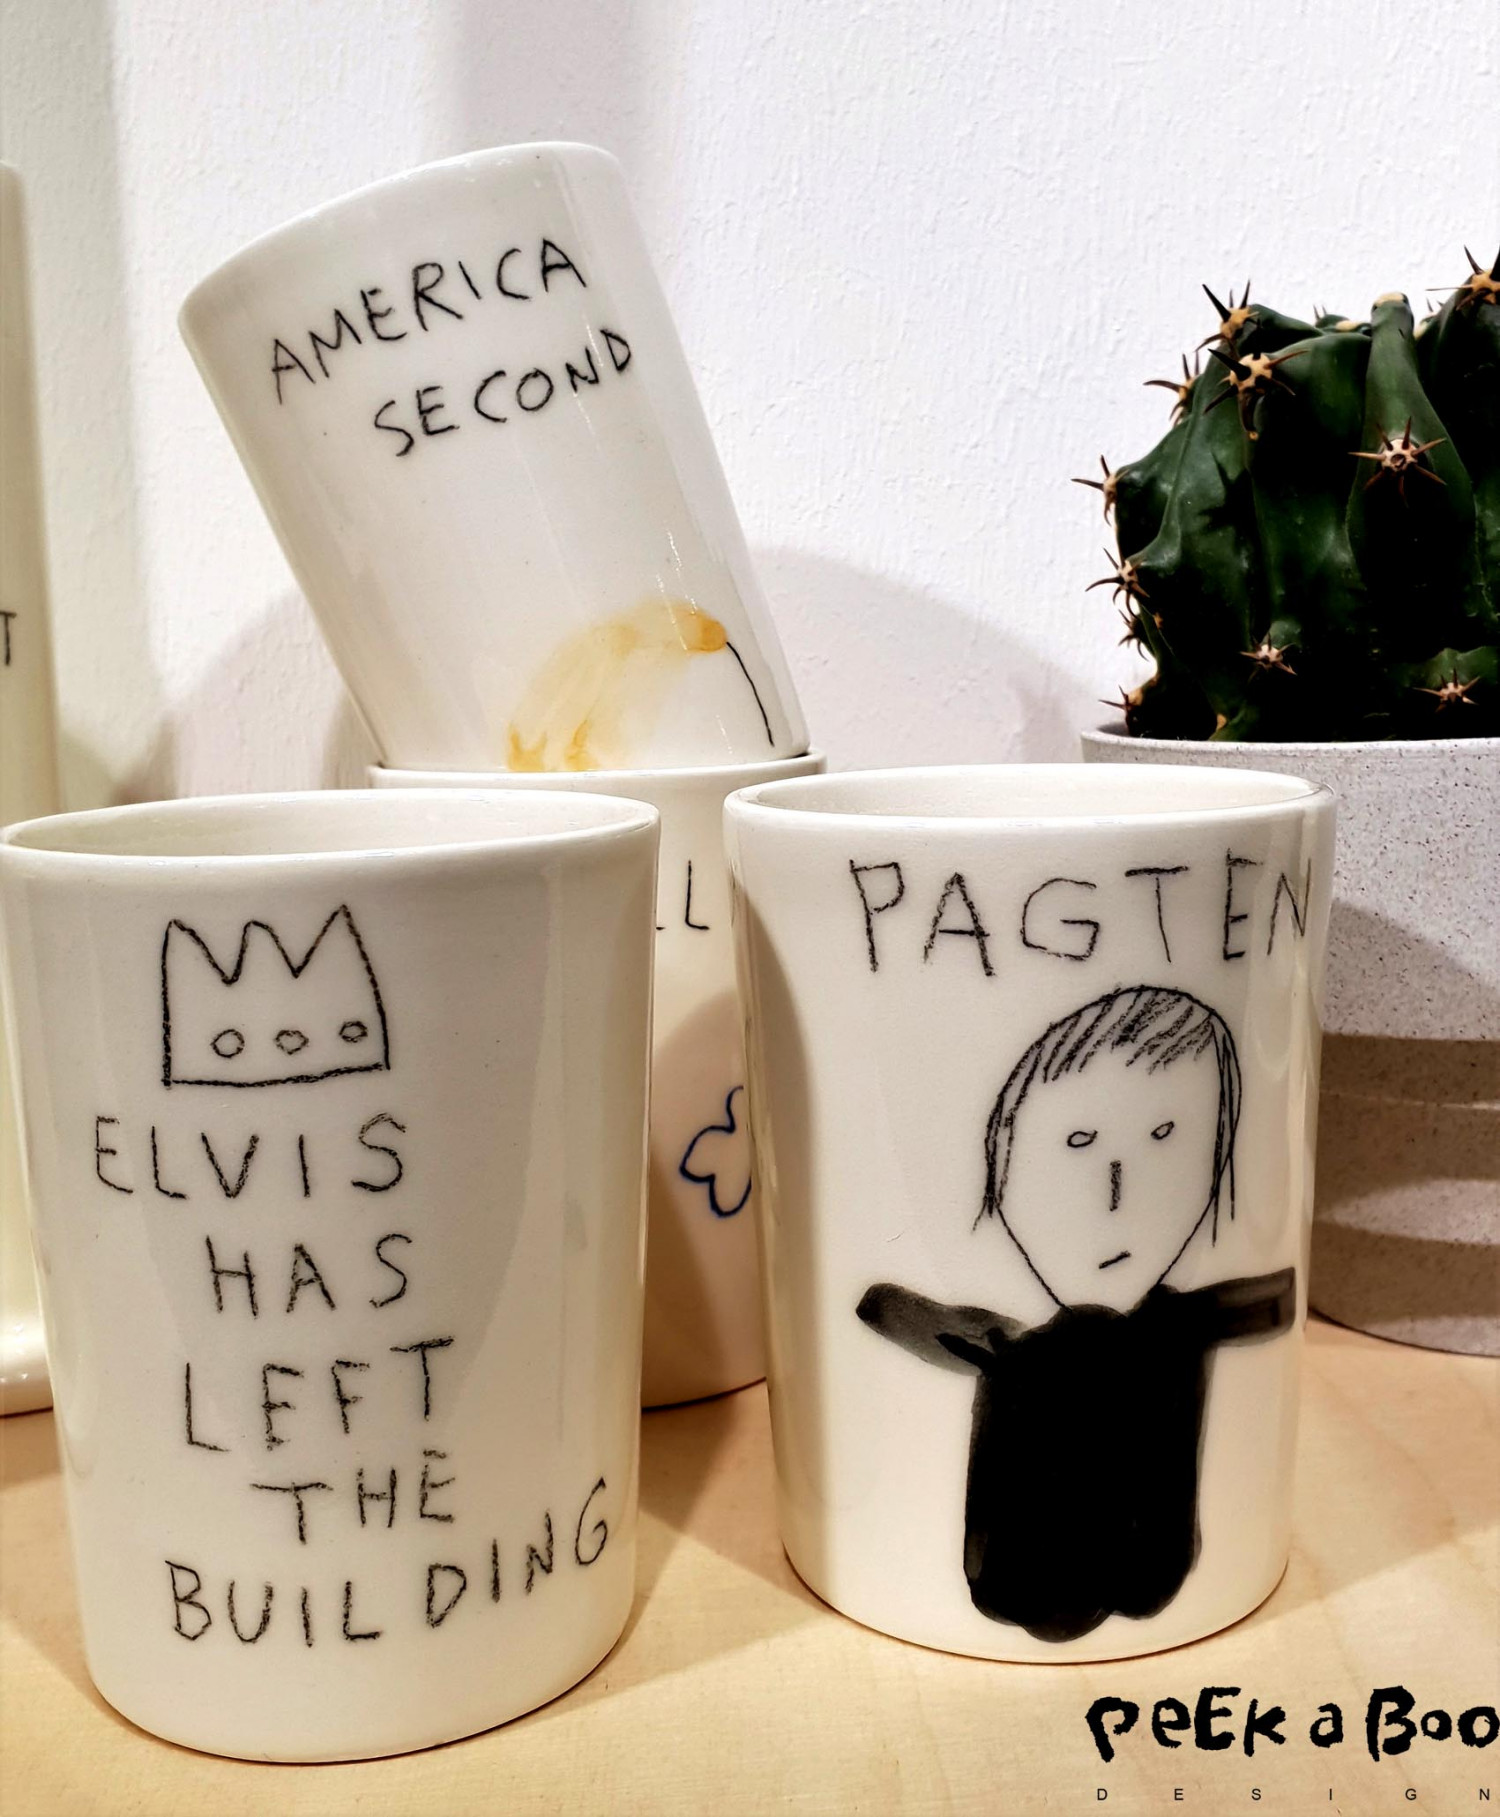 The unique cup, from danish ceramic Lars Rank with cool and humorous statements.